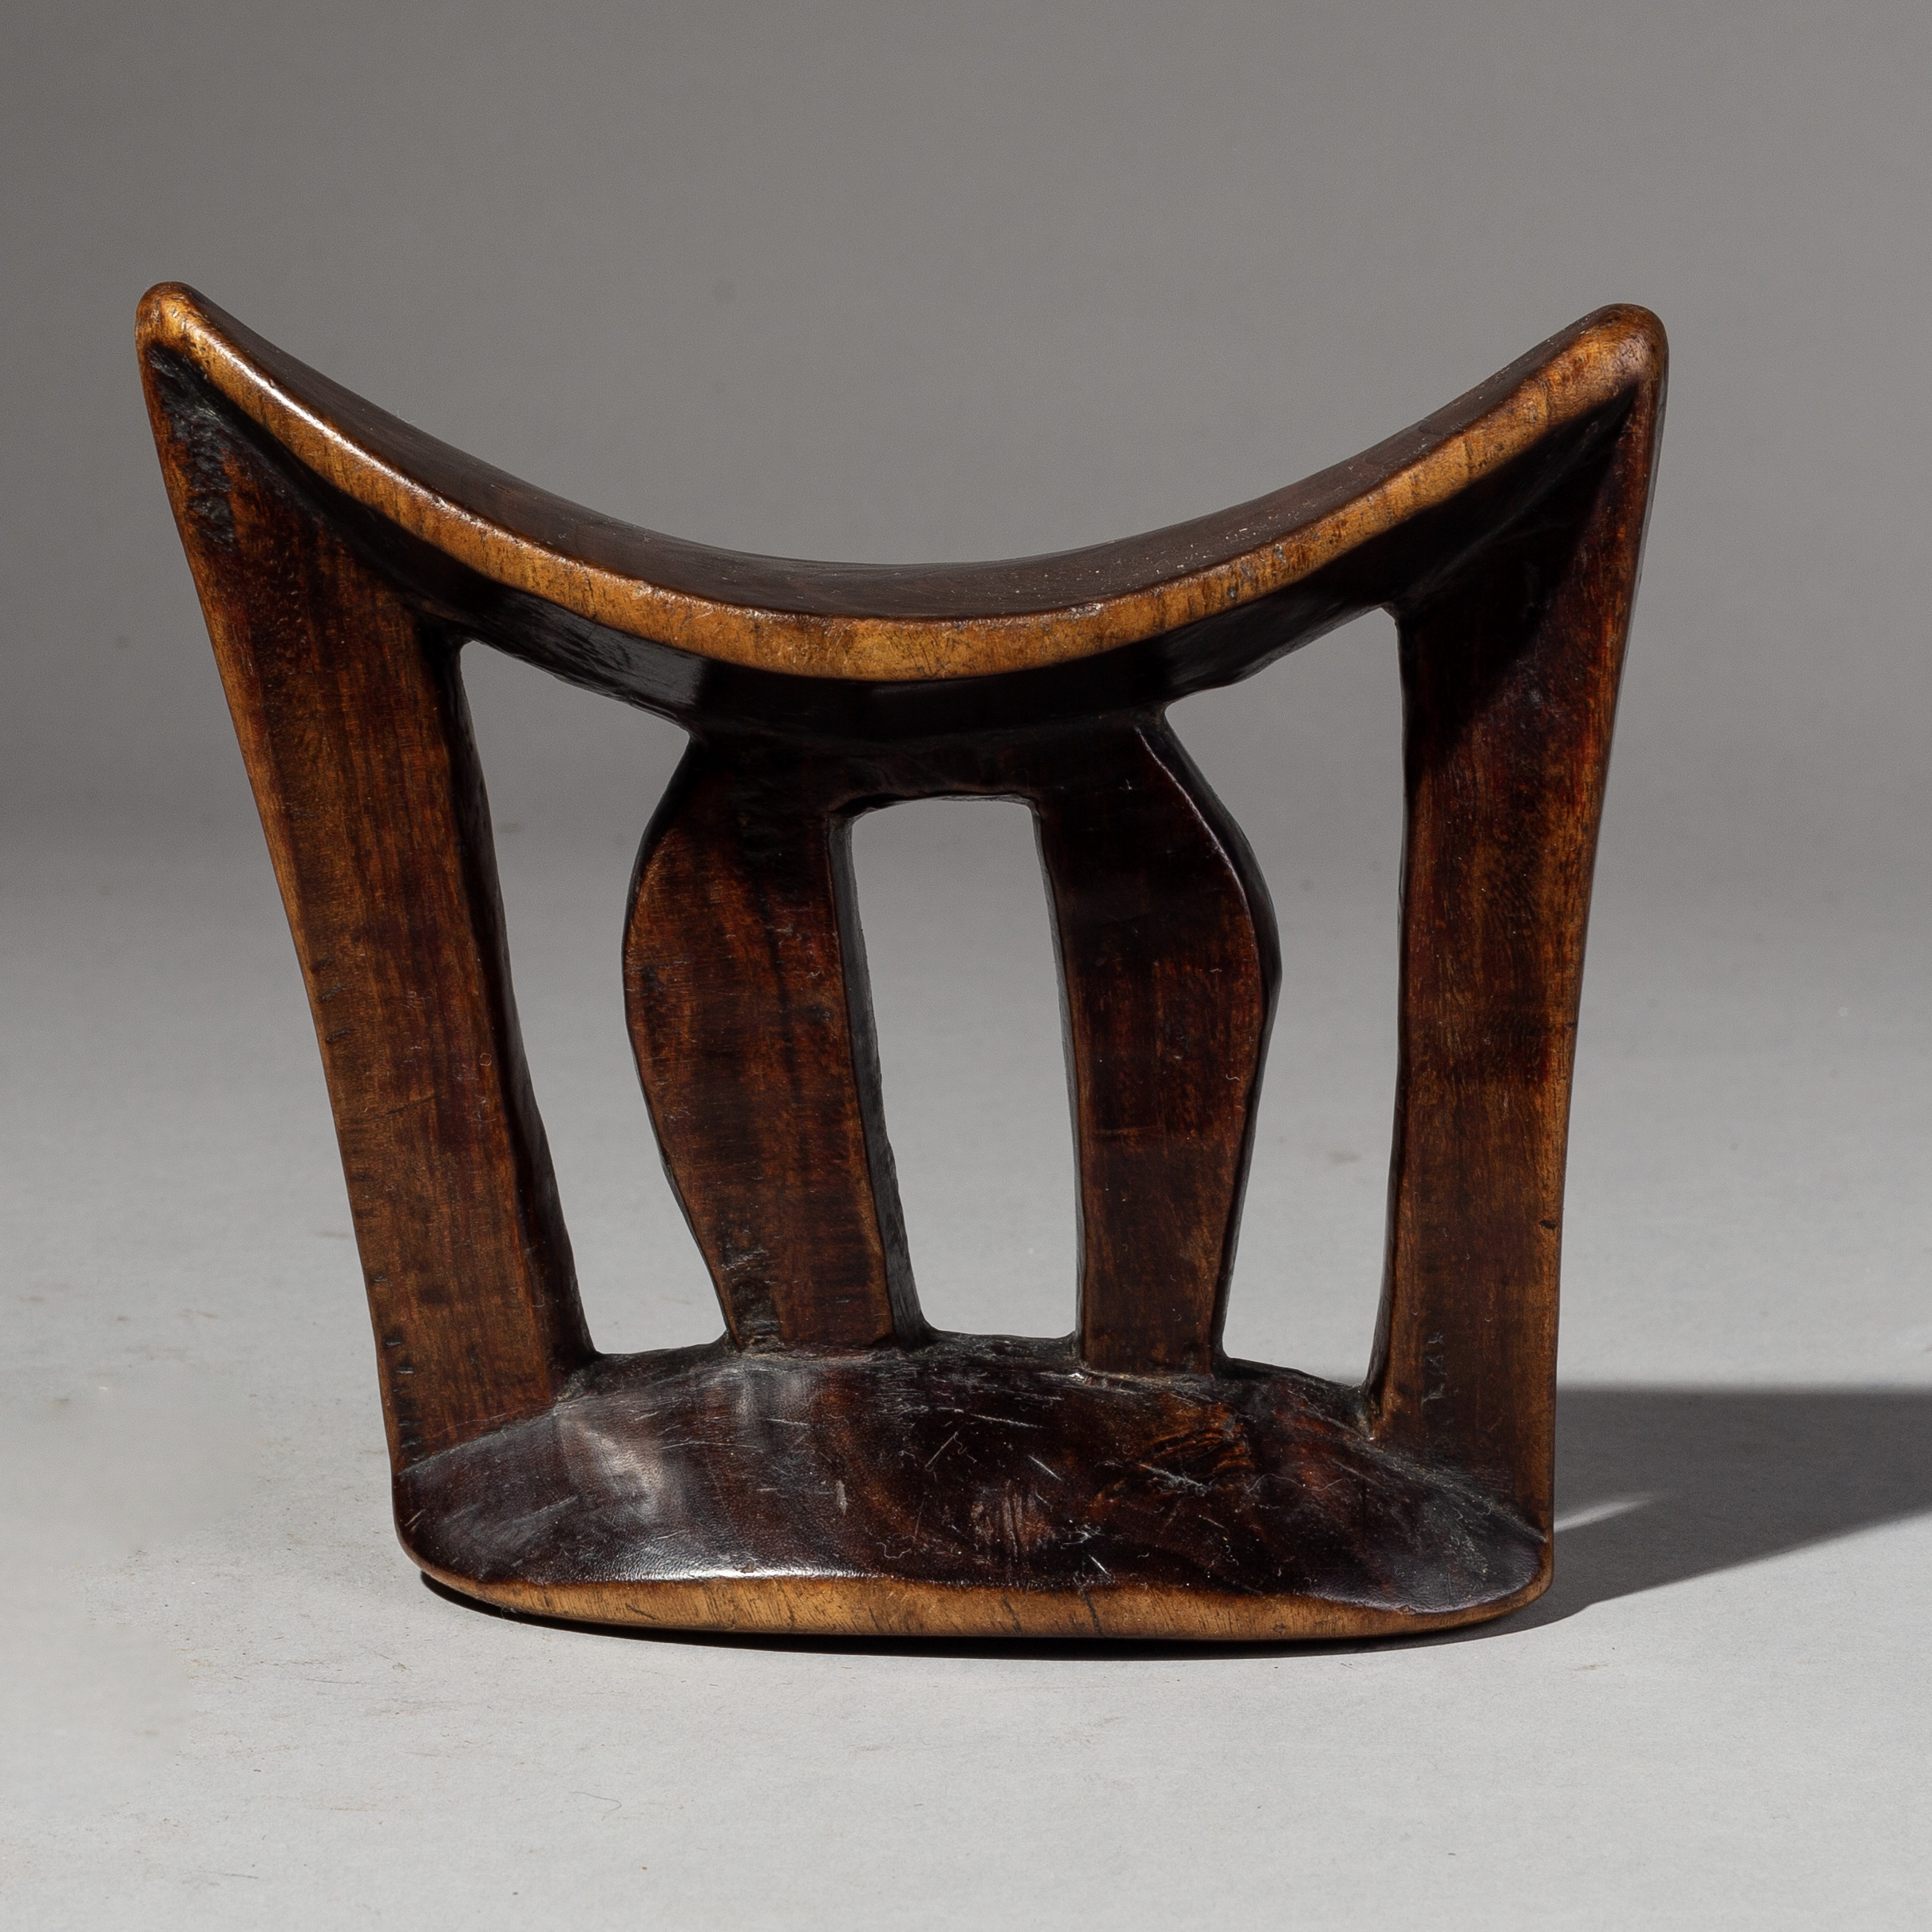 A HANDSOME, LUSHLY PATINATED ETHIOPIAN HEADREST ( No 2027 )